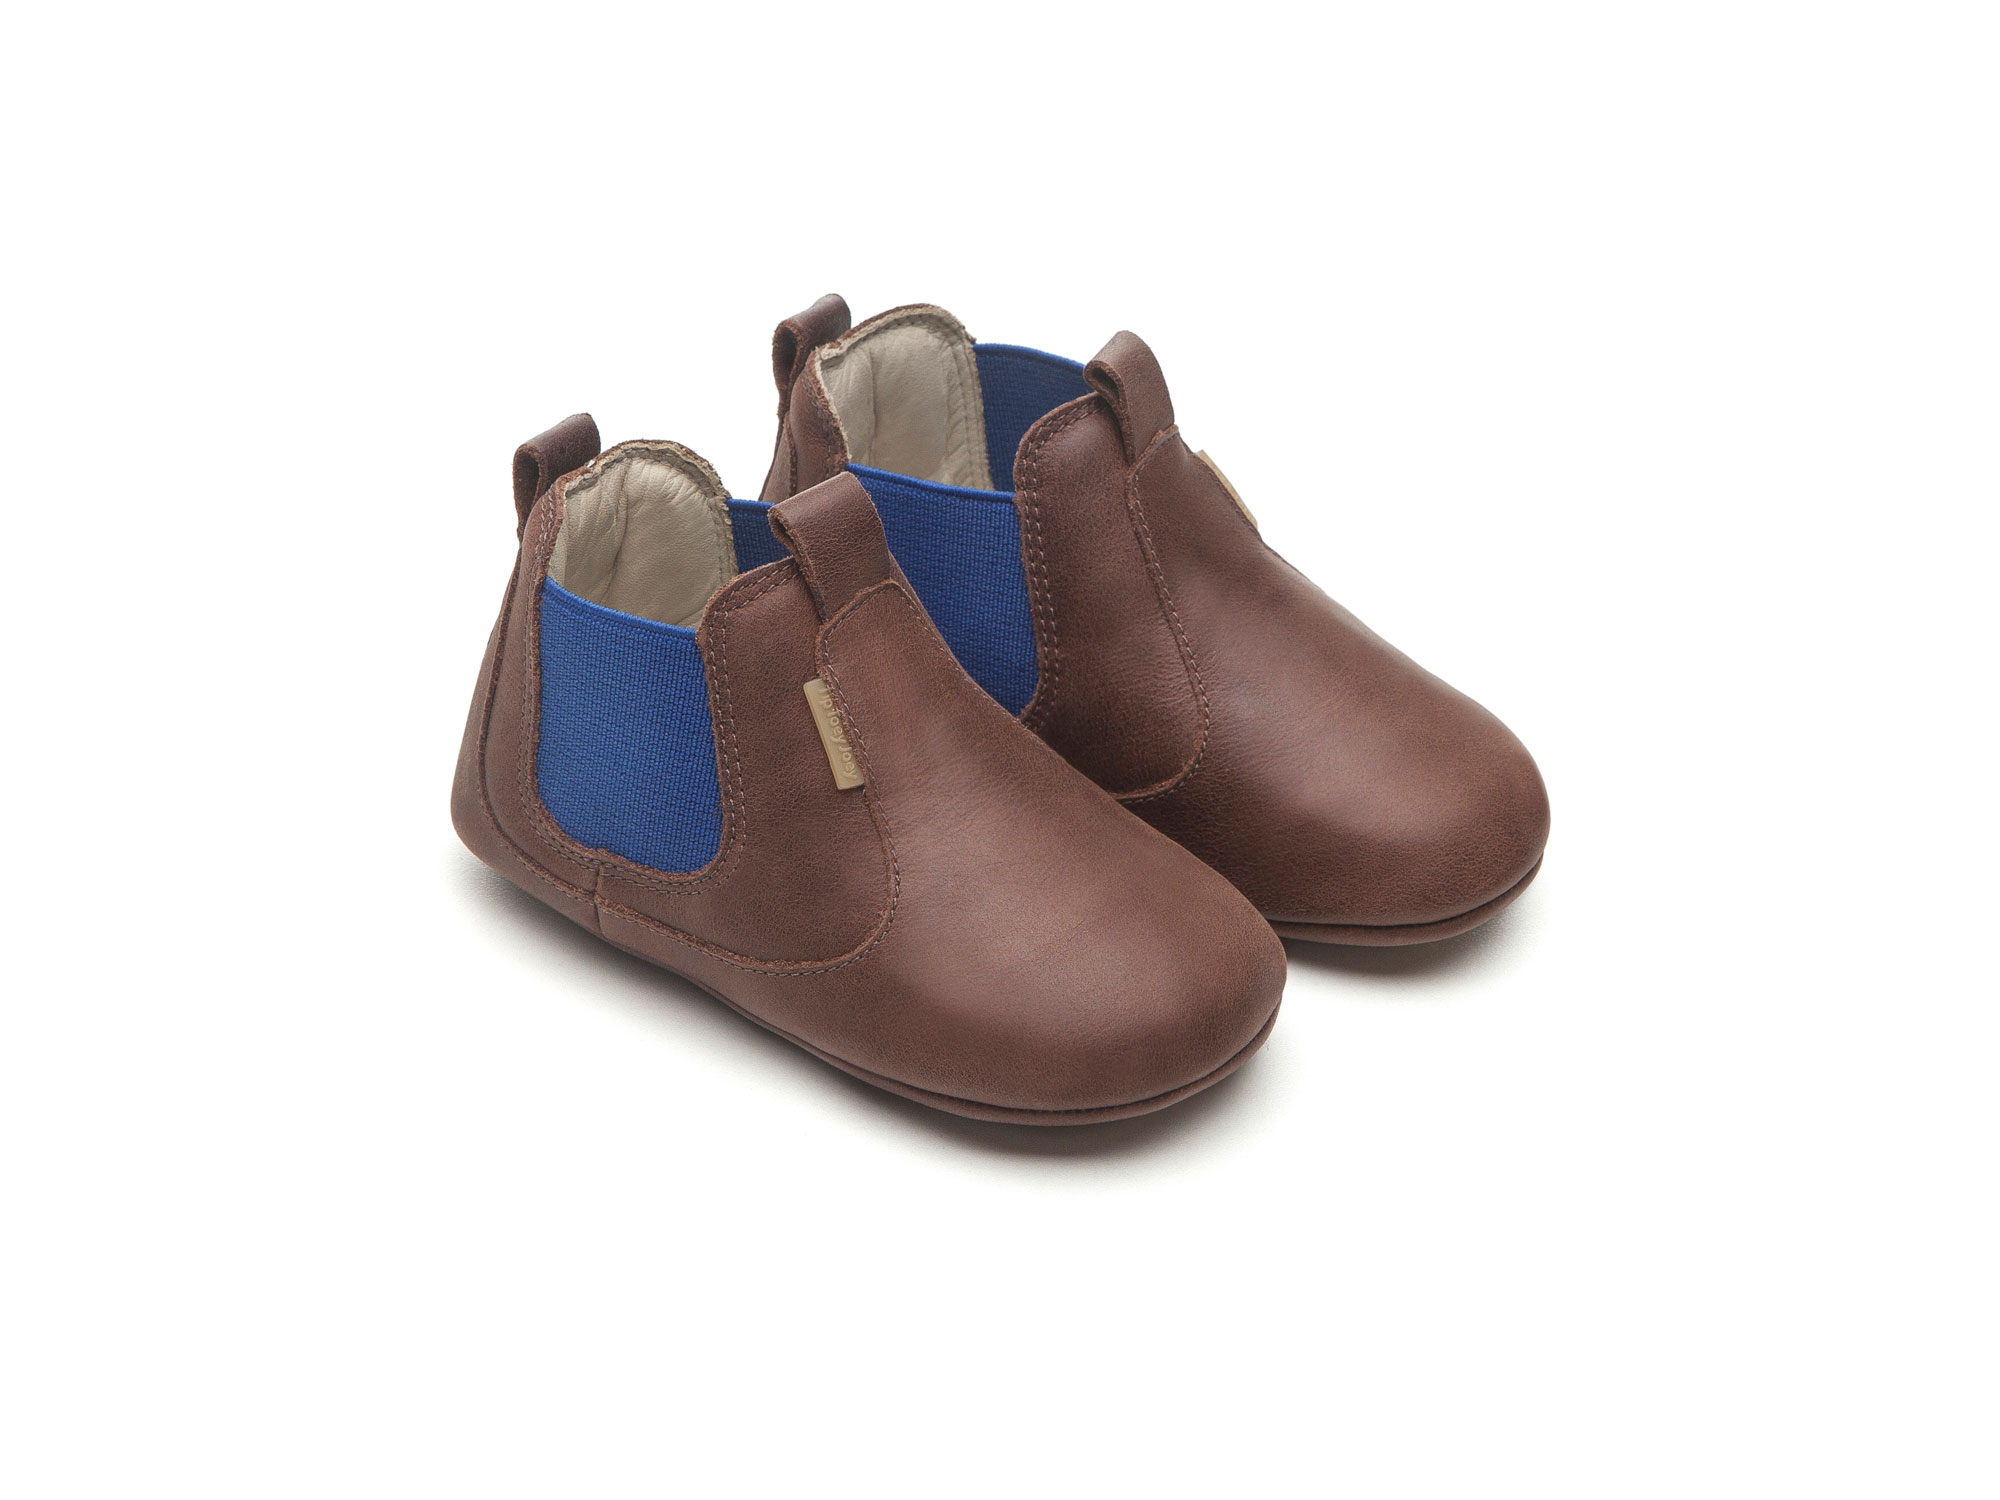 Boot Kicky Old Tan/ Royal Baby for ages 0 to 2 years - 0